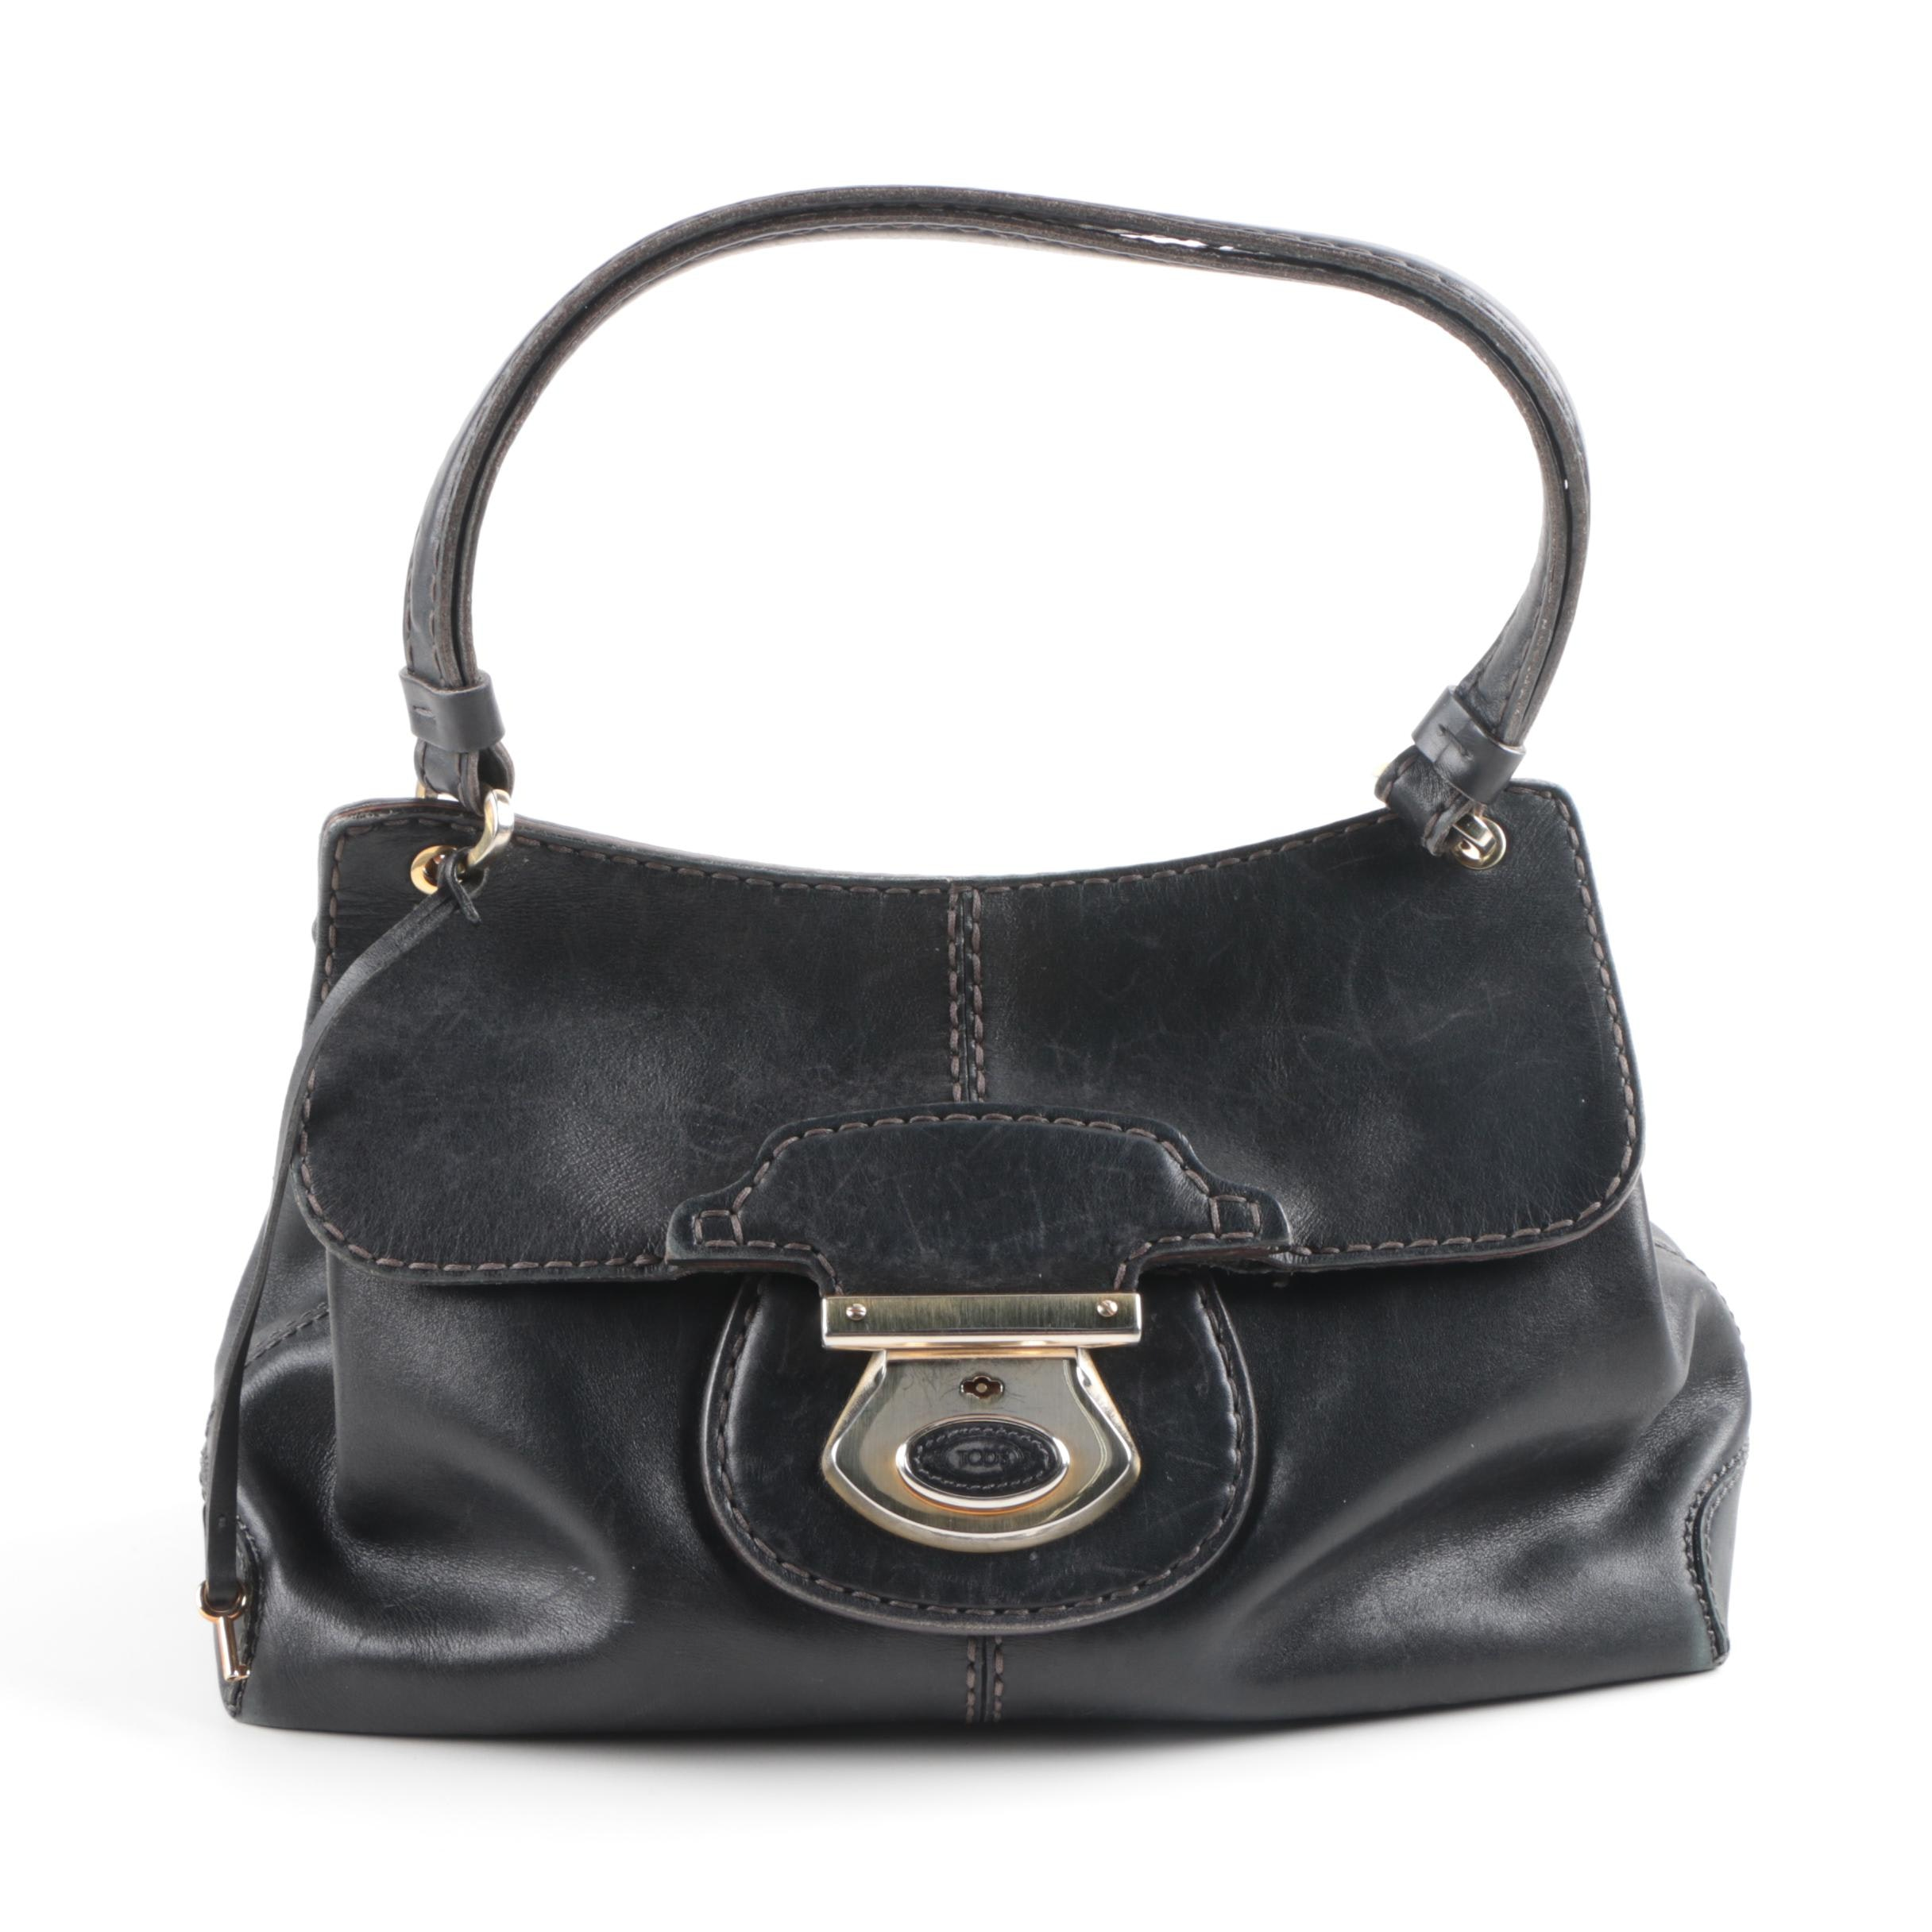 TOD'S Black Leather Handbag